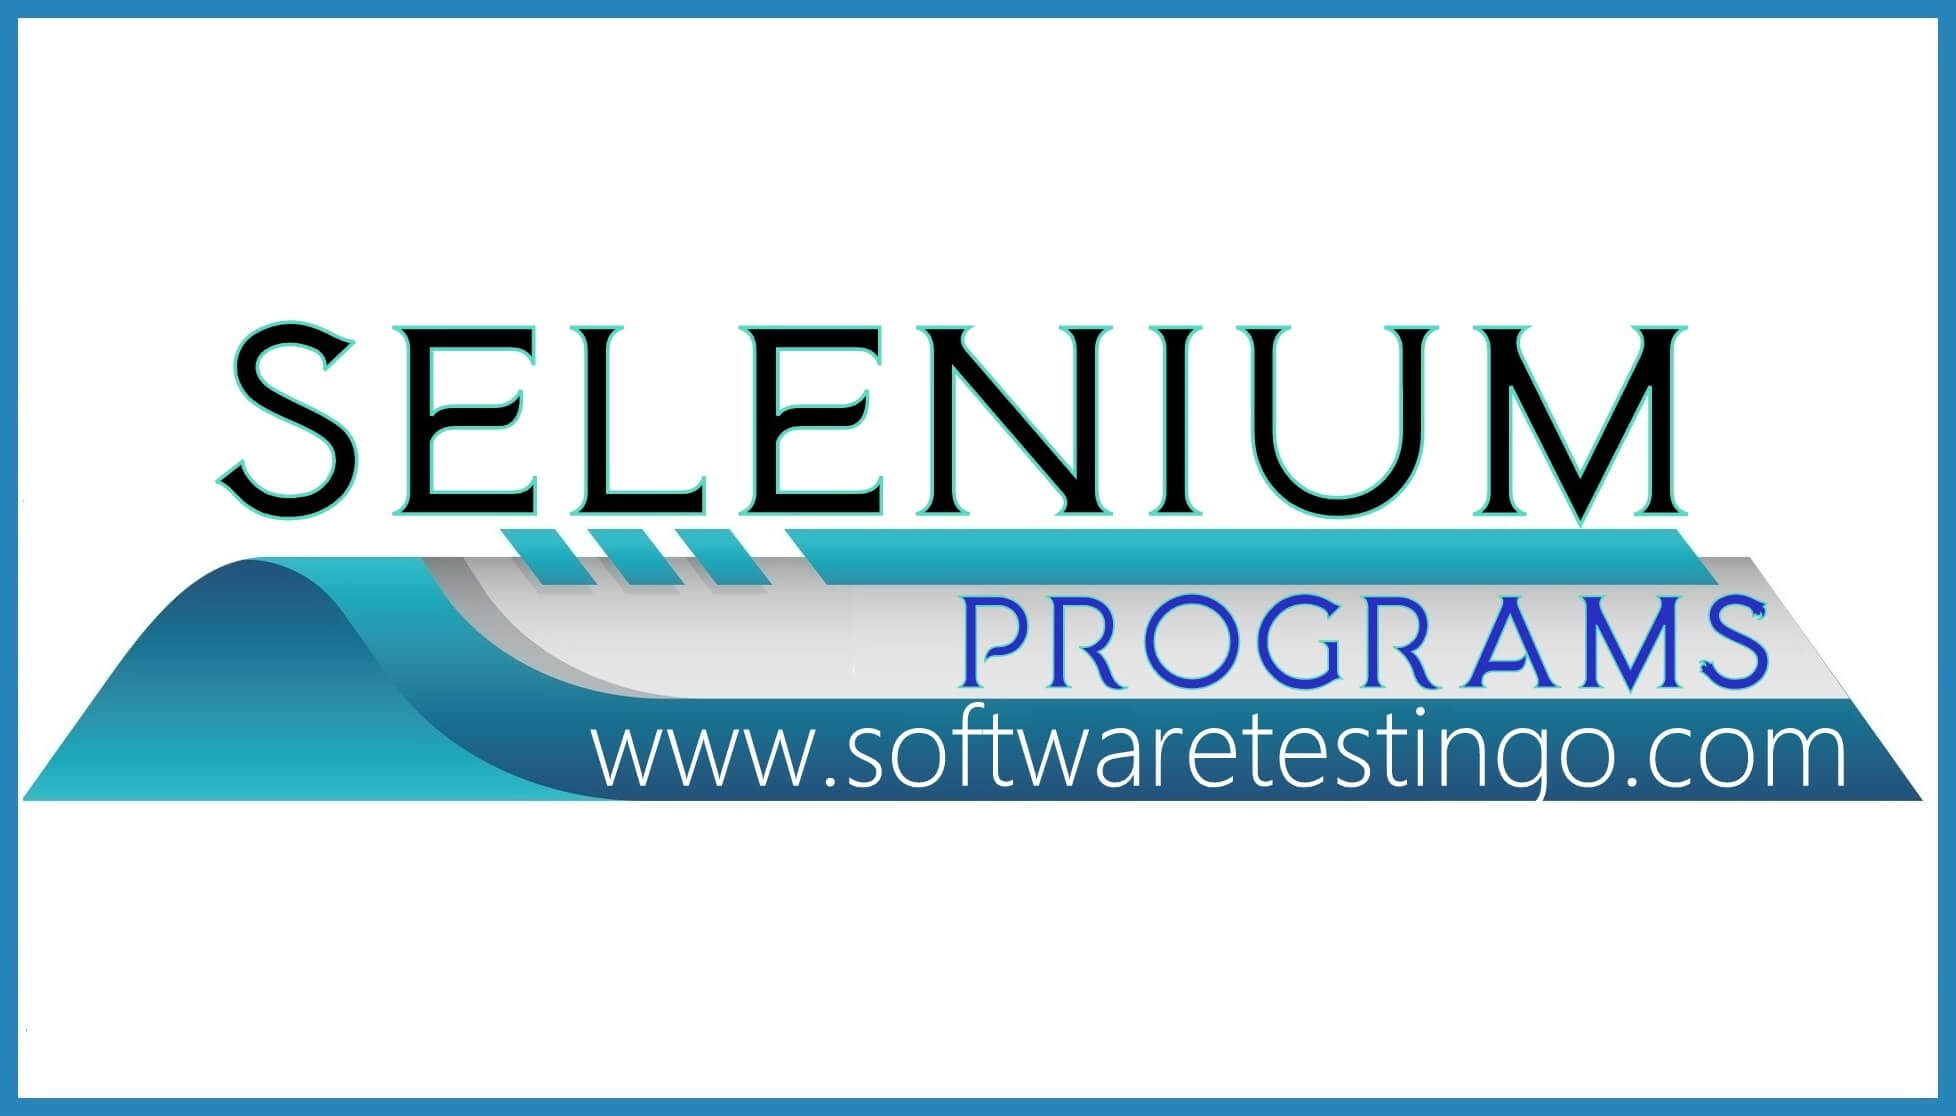 SELENIUM CHROMEDRIVER CHROMEOPTIONS - Speeding up Selenium